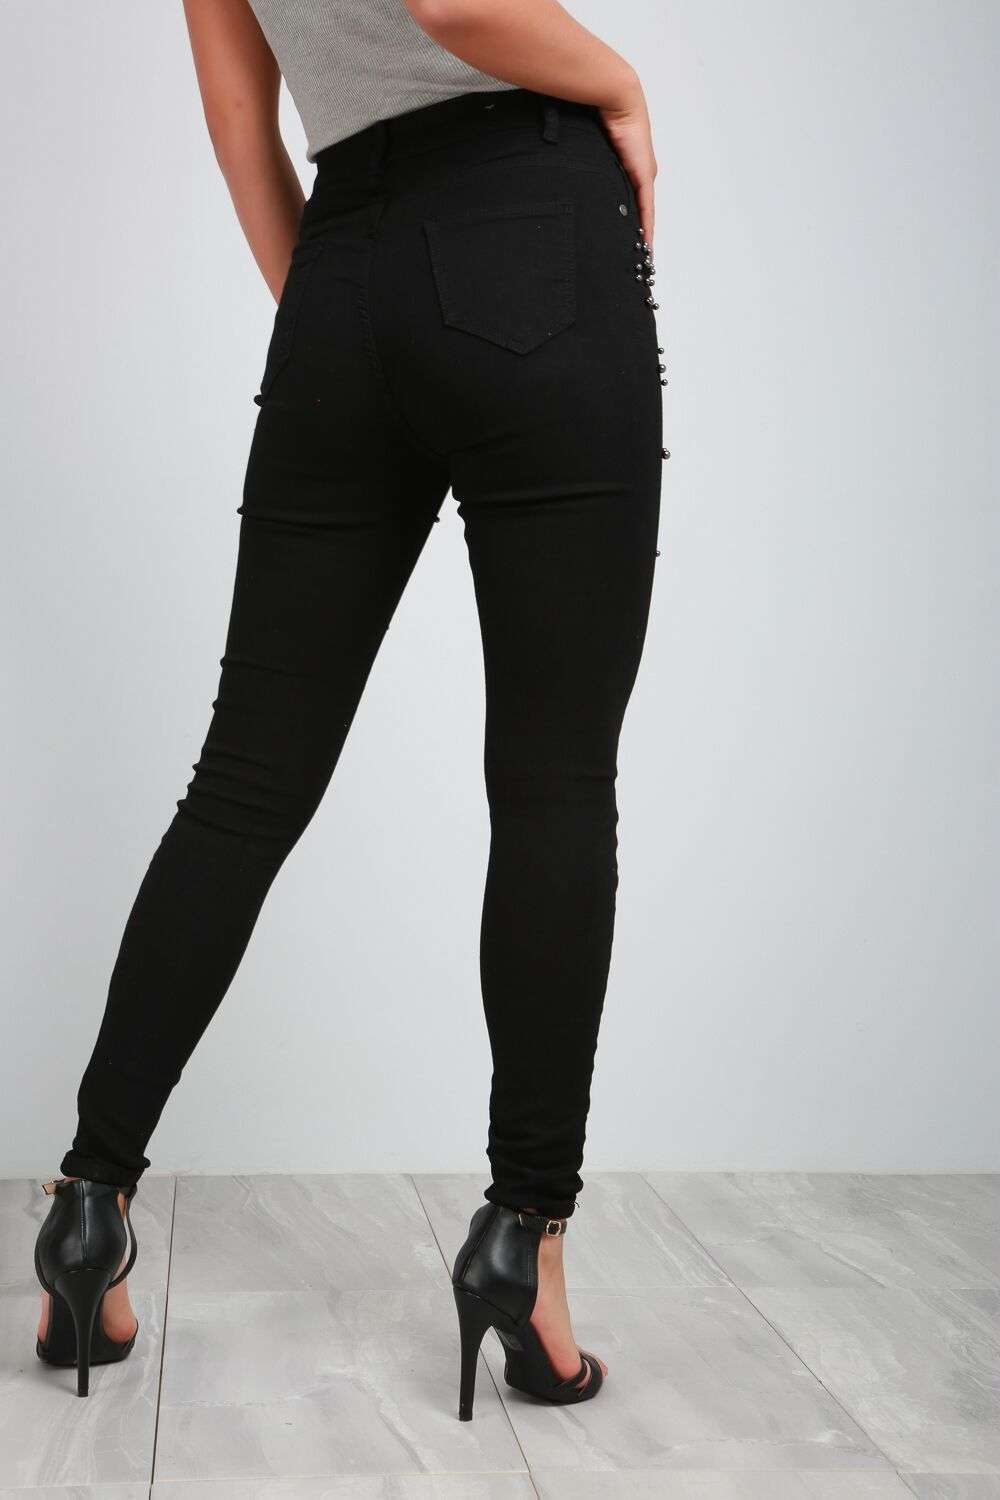 Elissa Black High Waisted Studded Skinny Jeans - bejealous-com